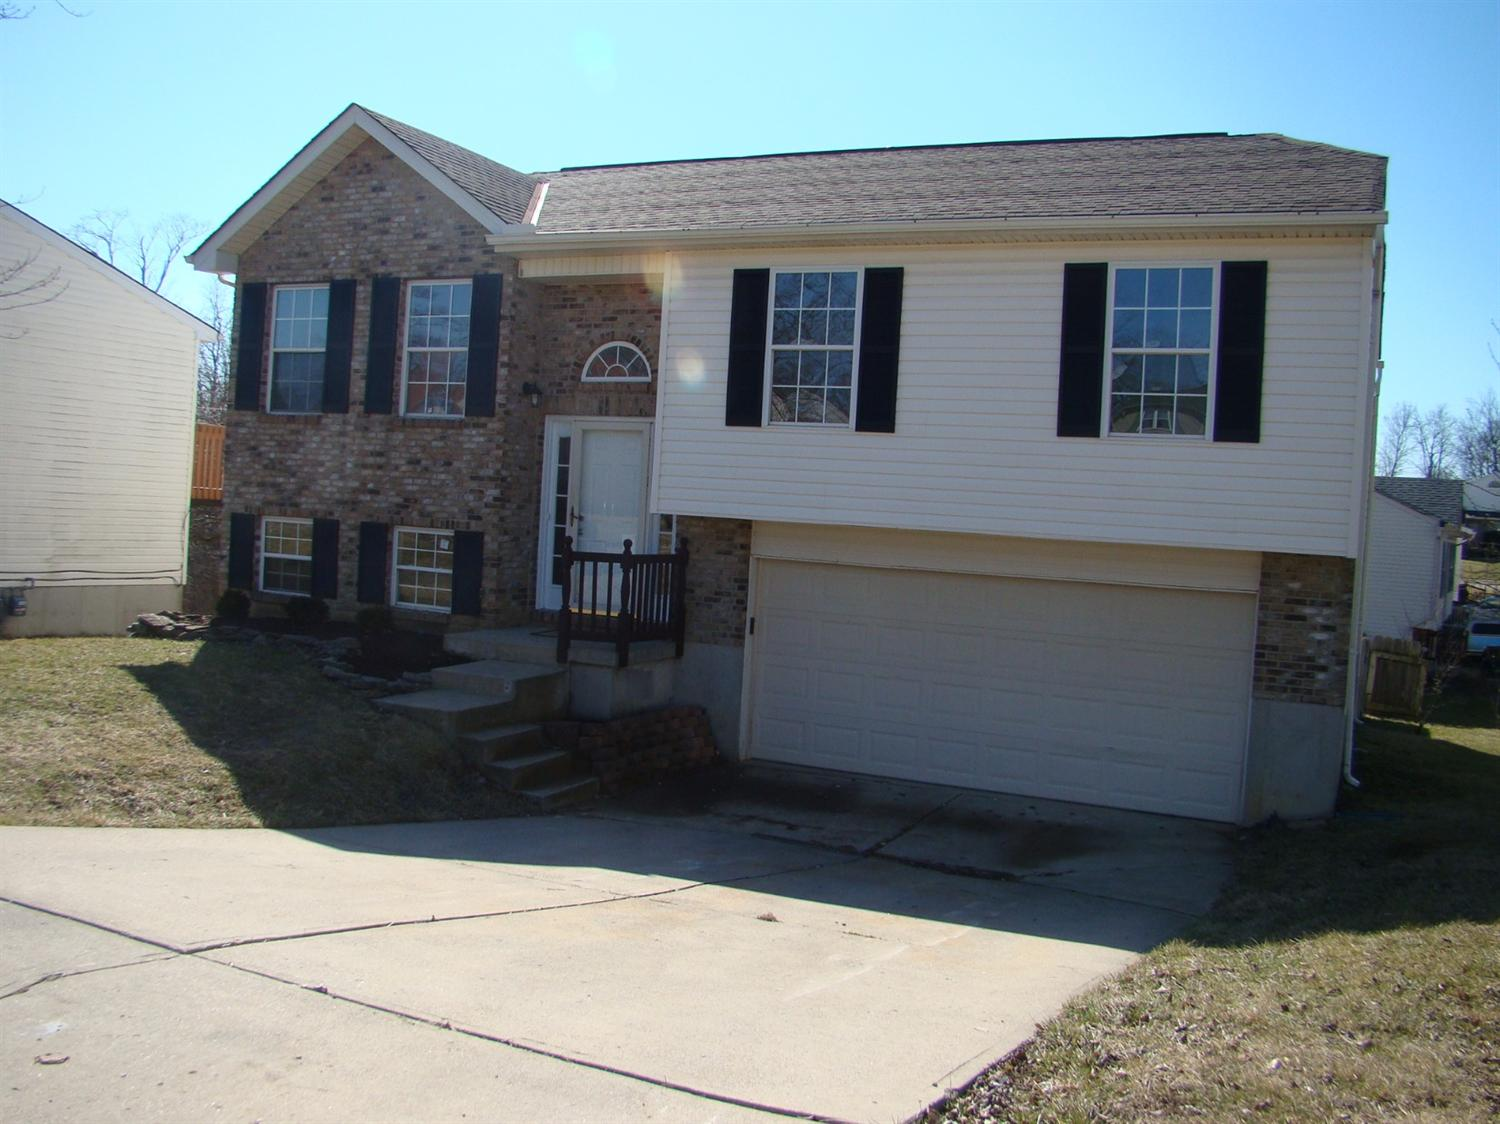 Photo 1 for 3637 Mitten Dr Elsmere, KY 41018